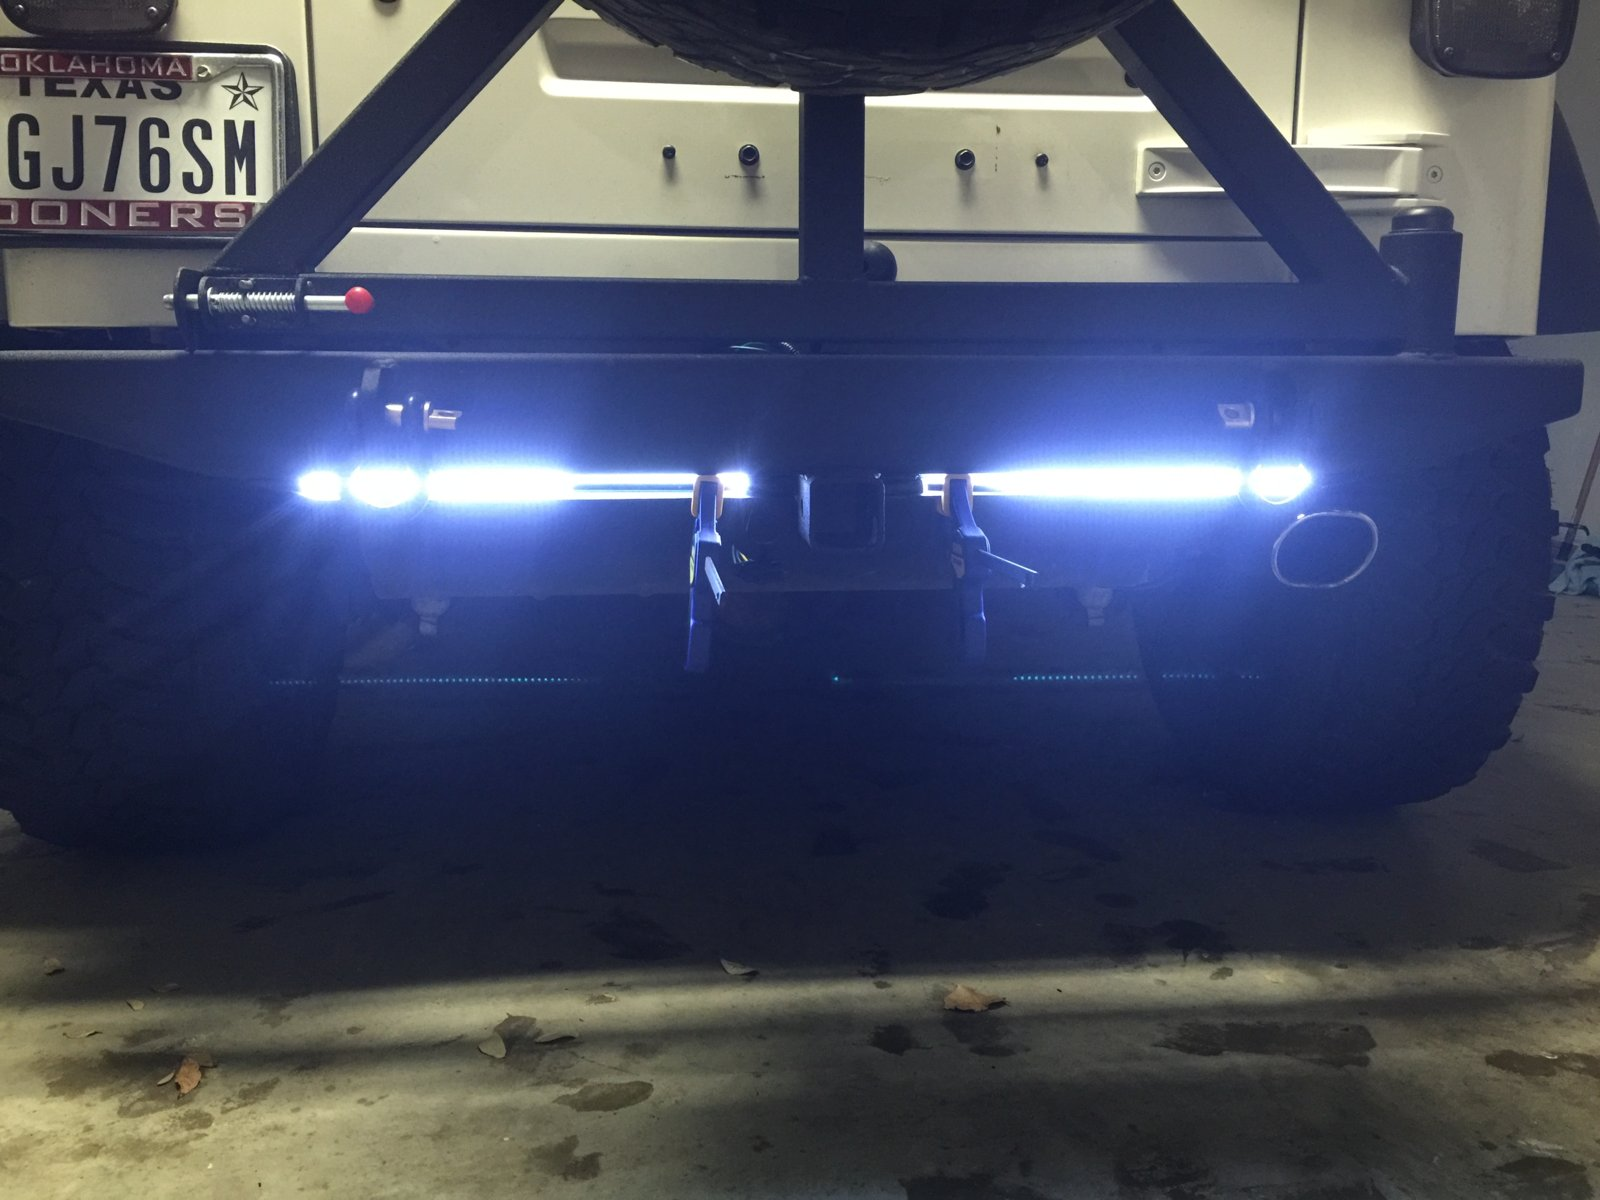 hight resolution of i added channel to a custom rear bumper and mounted led lights into the channel the channel keeps them protected from debris from trails and such